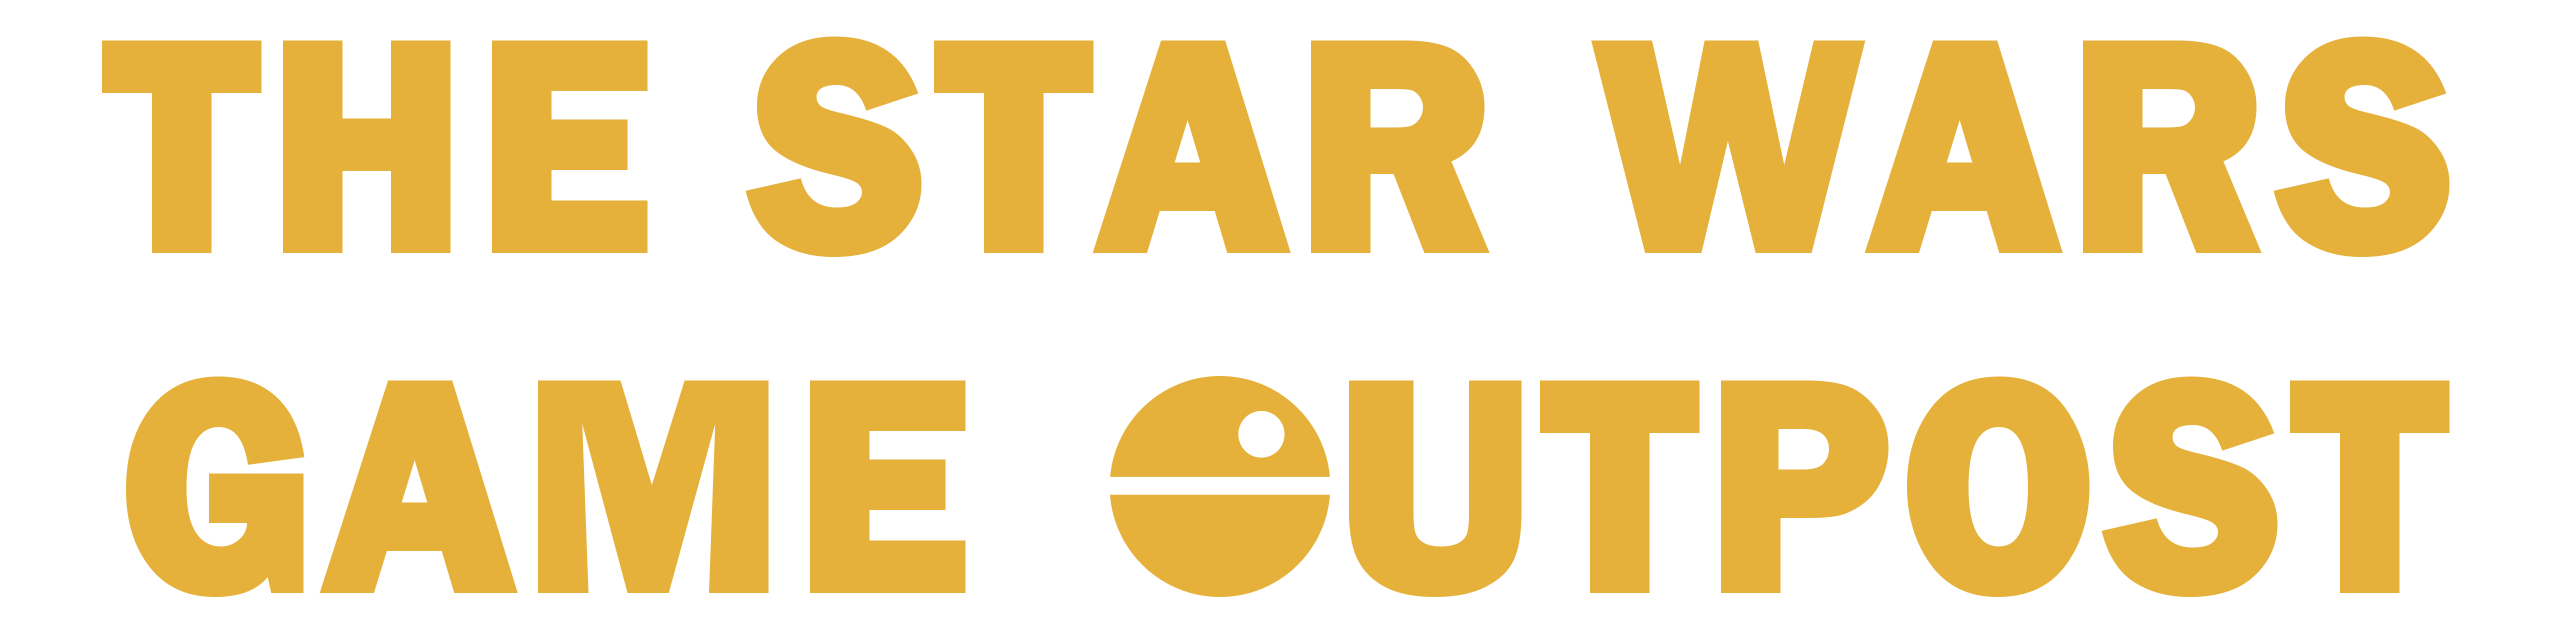 The Star Wars Game Outpost